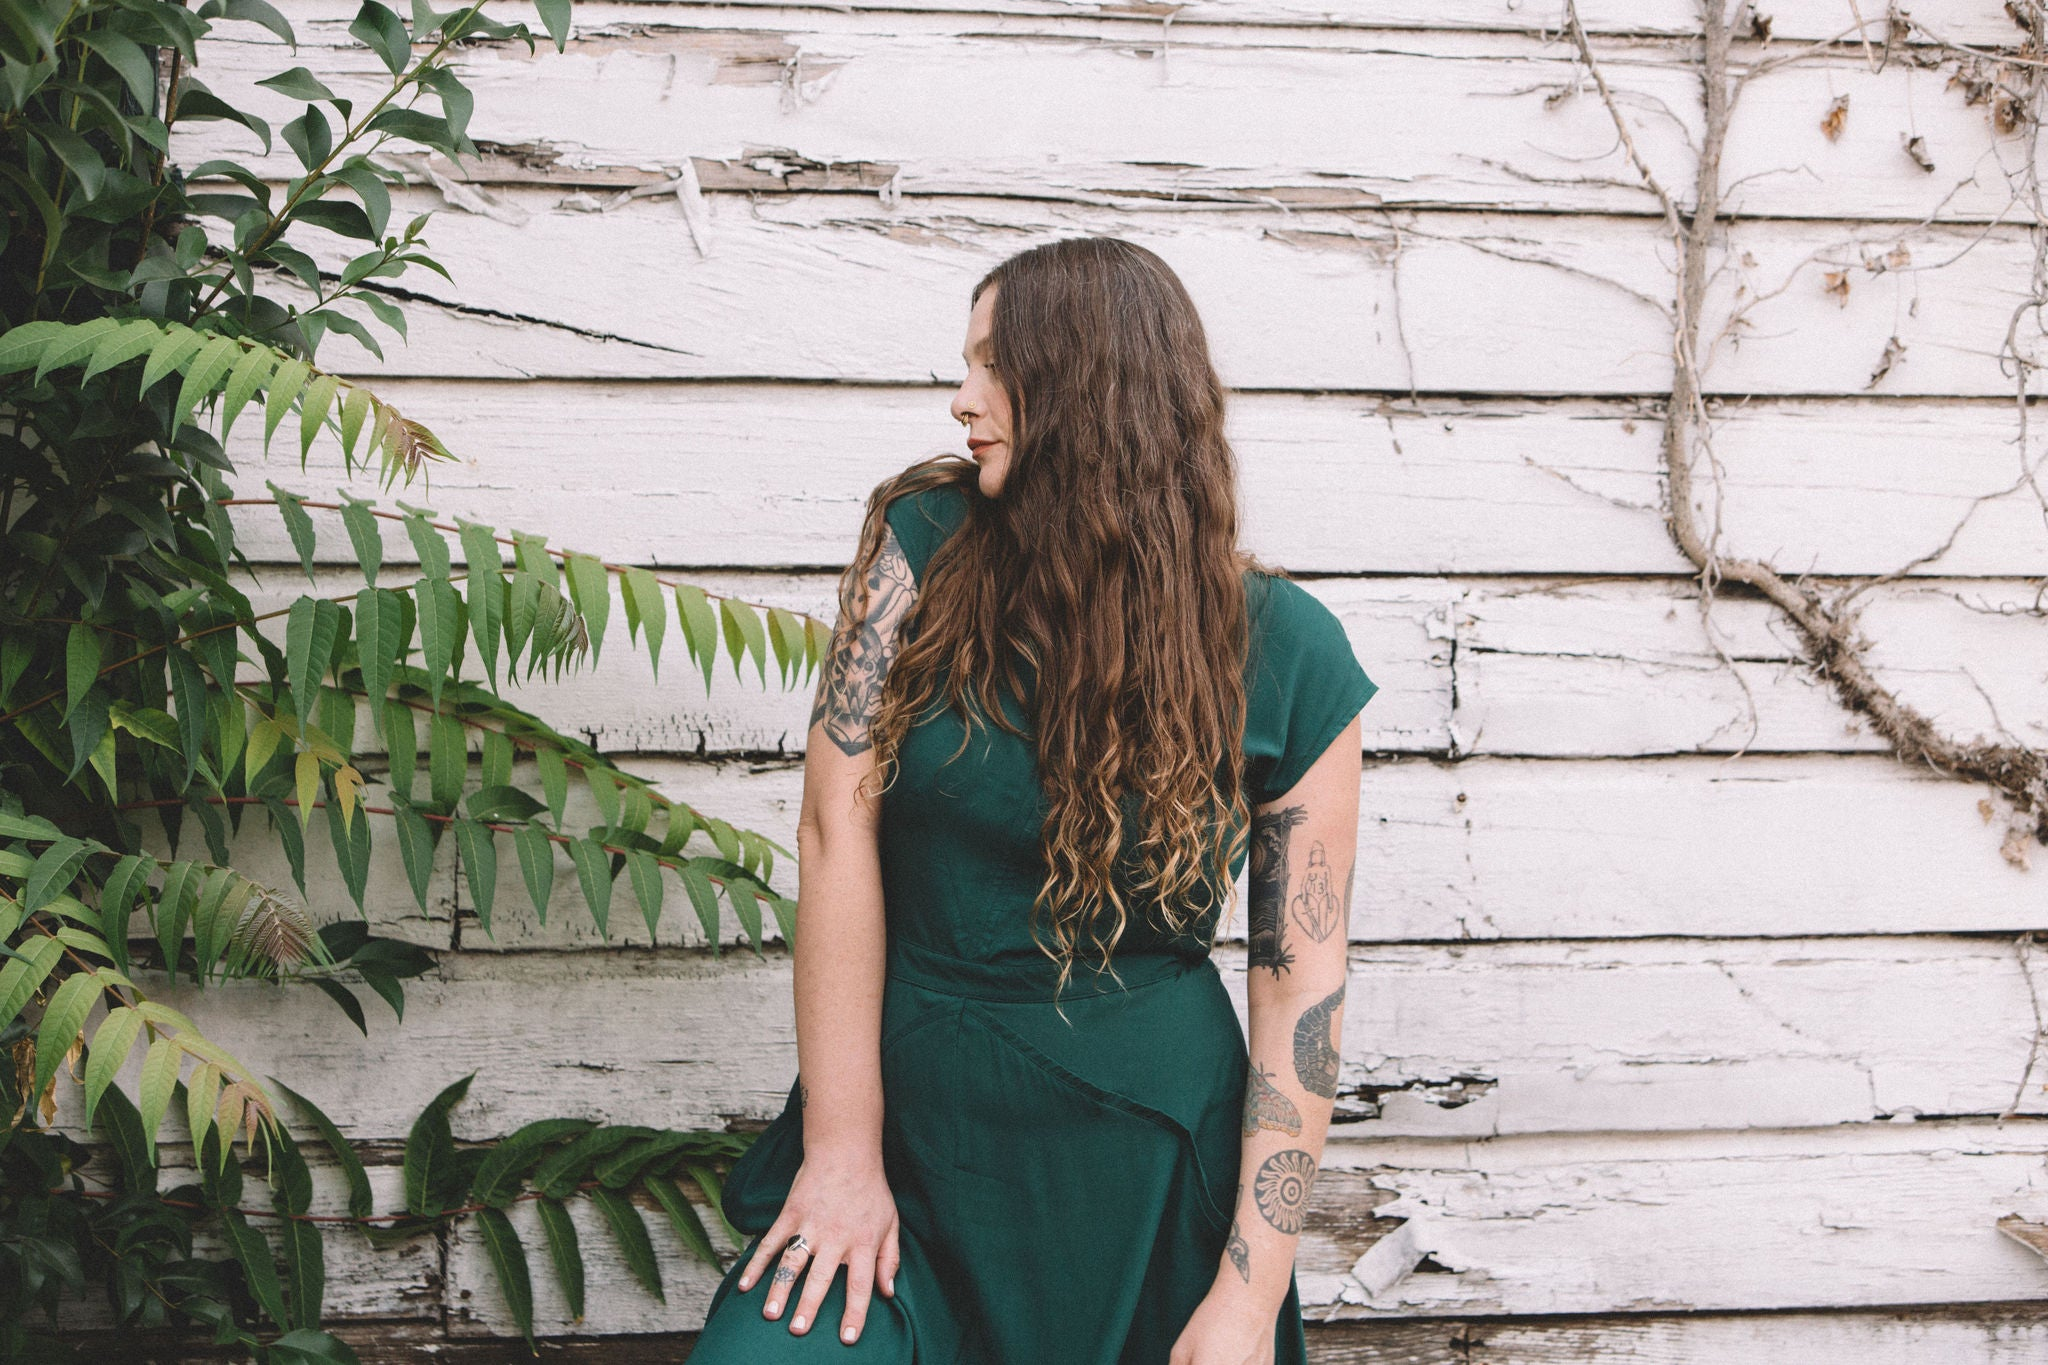 emerald green xena dress on a white woman with long hair